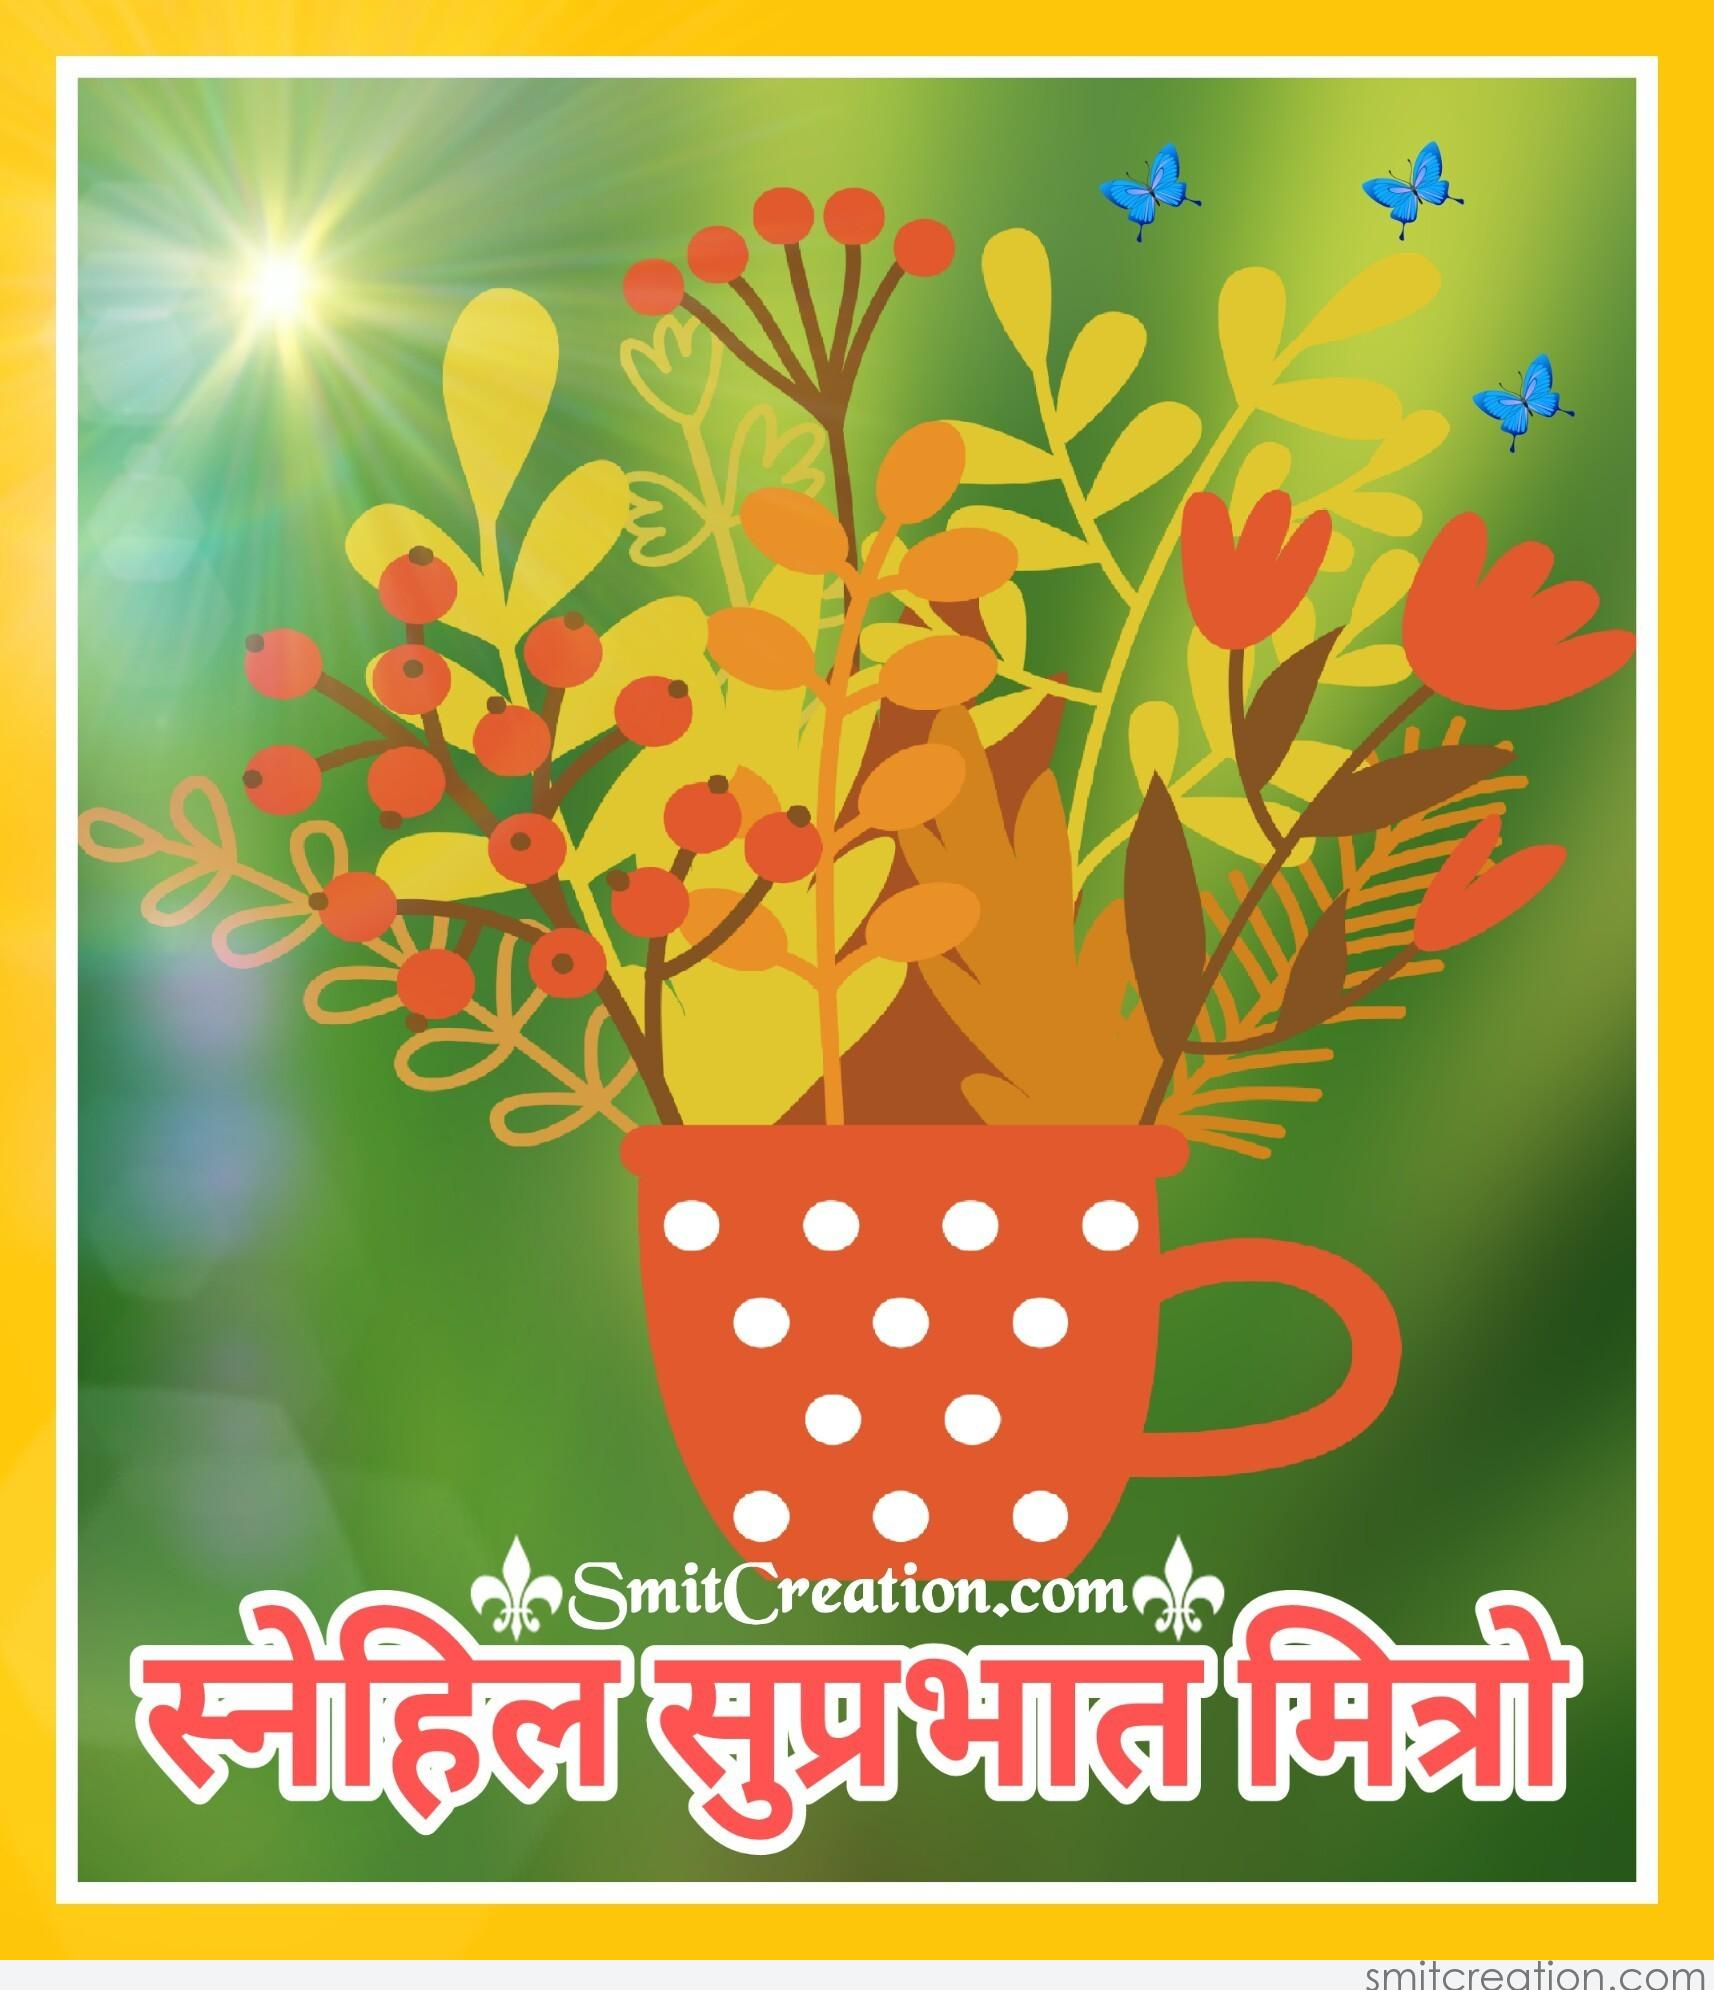 Image Of Good Morning With Hindi Qu: Suprabhat Hindi Images Pictures And Graphics